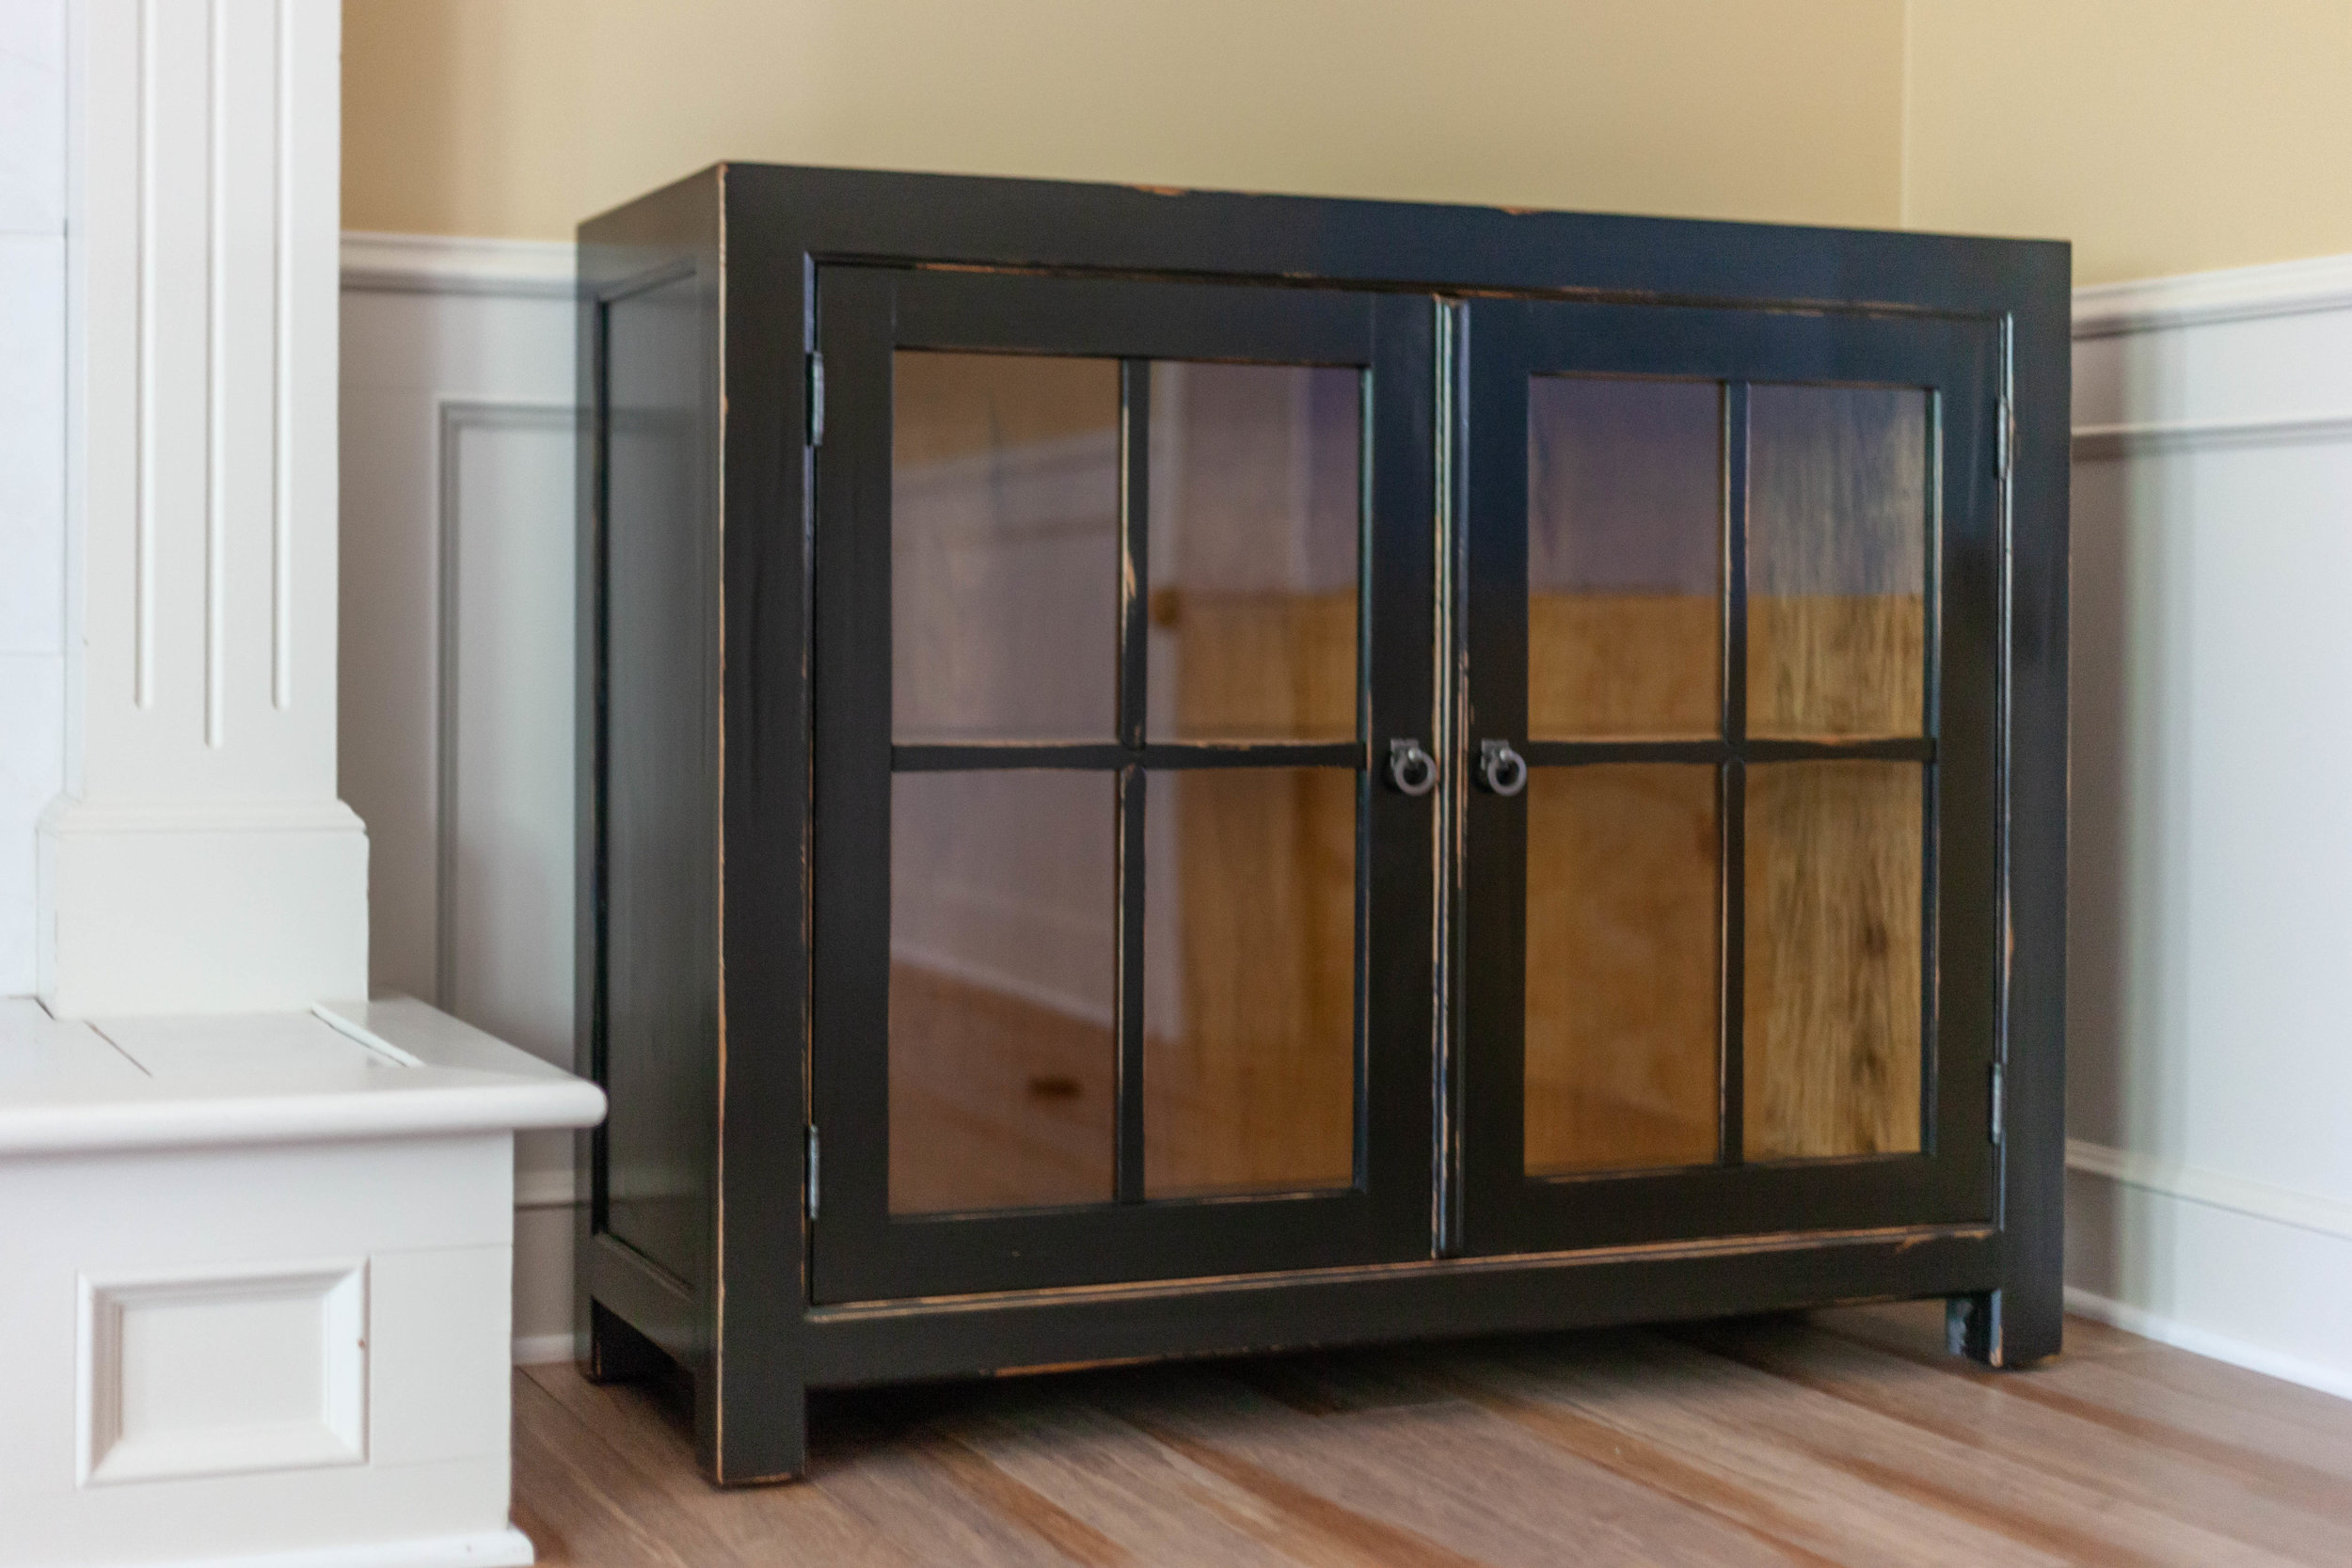 Custom media cabinet, glass panel doors, distressed black finish, maple & poplar construction